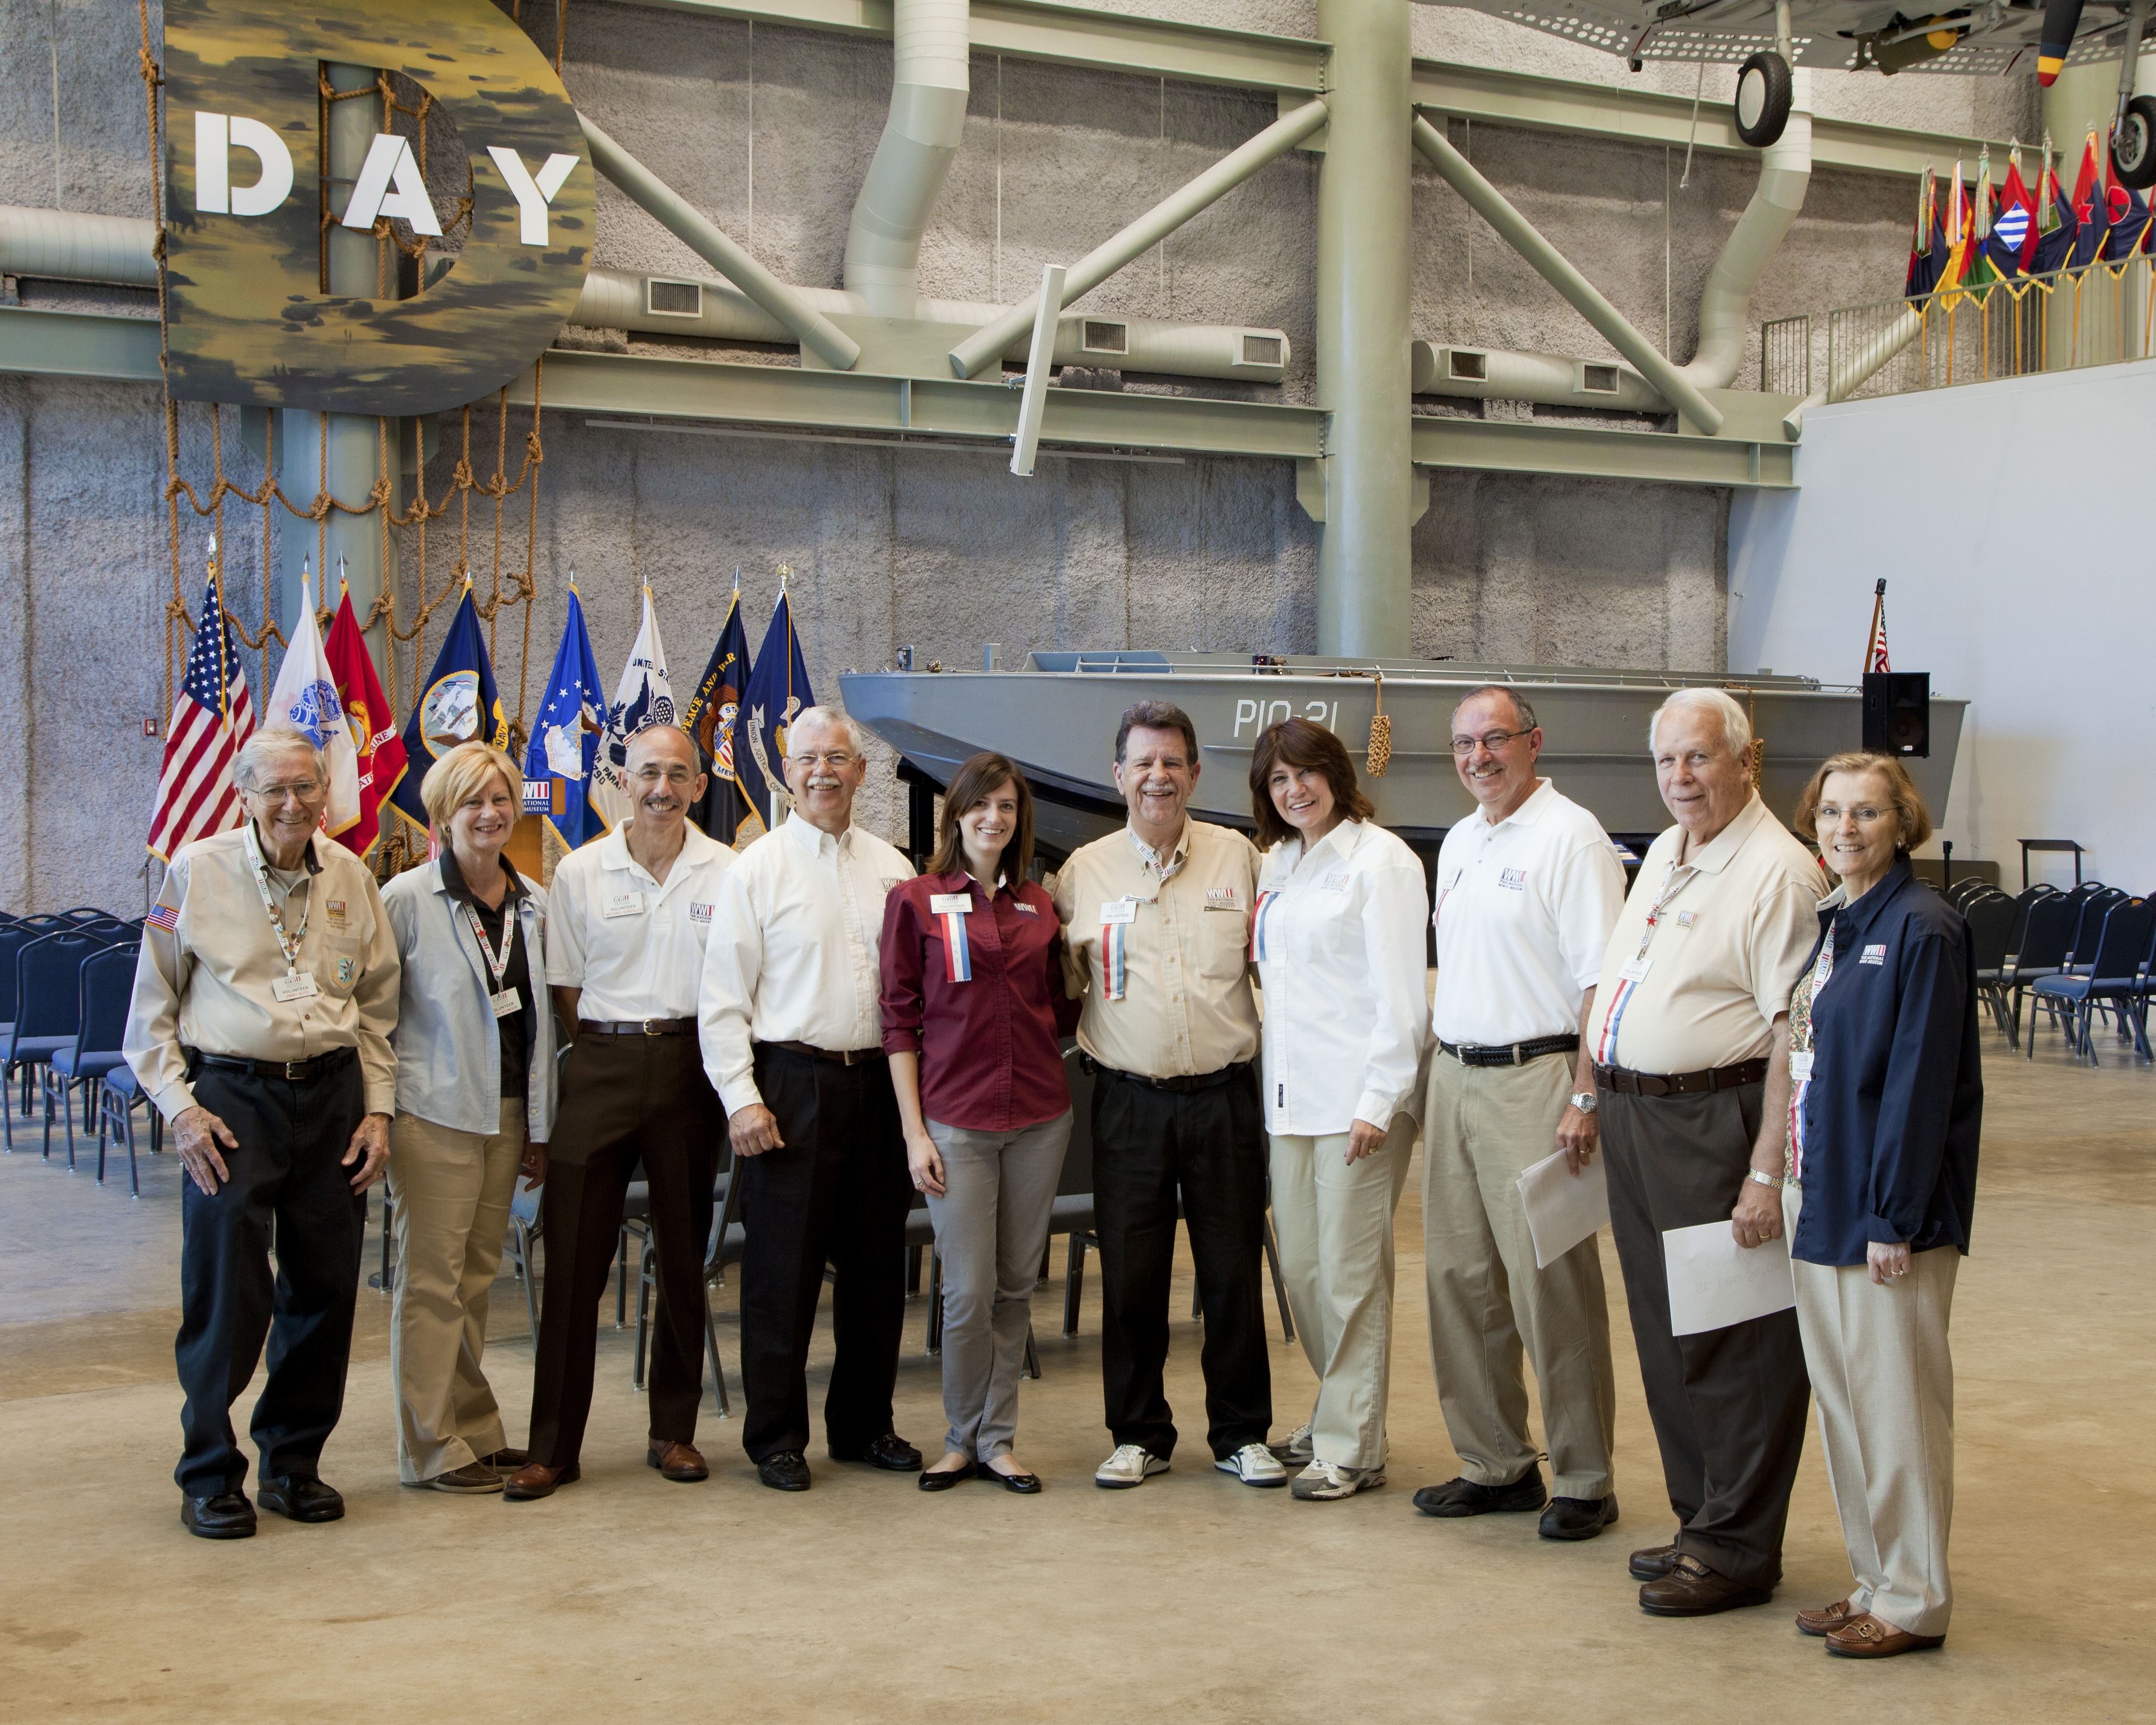 Volunteer staff at The National WWII Museum